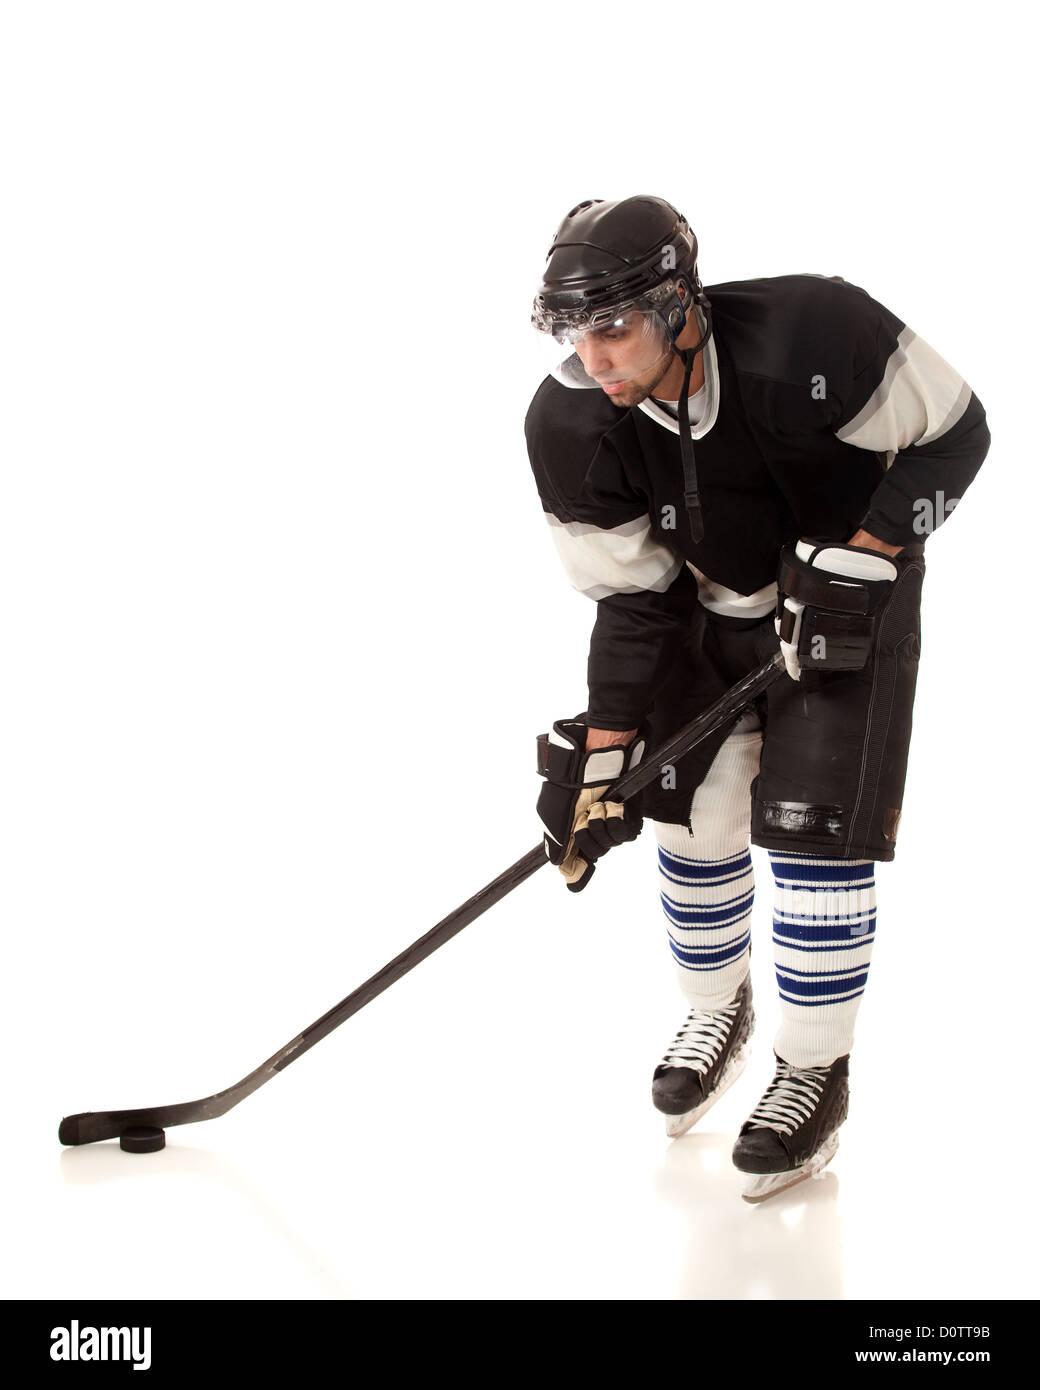 Ice Hockey Player - Stock Image